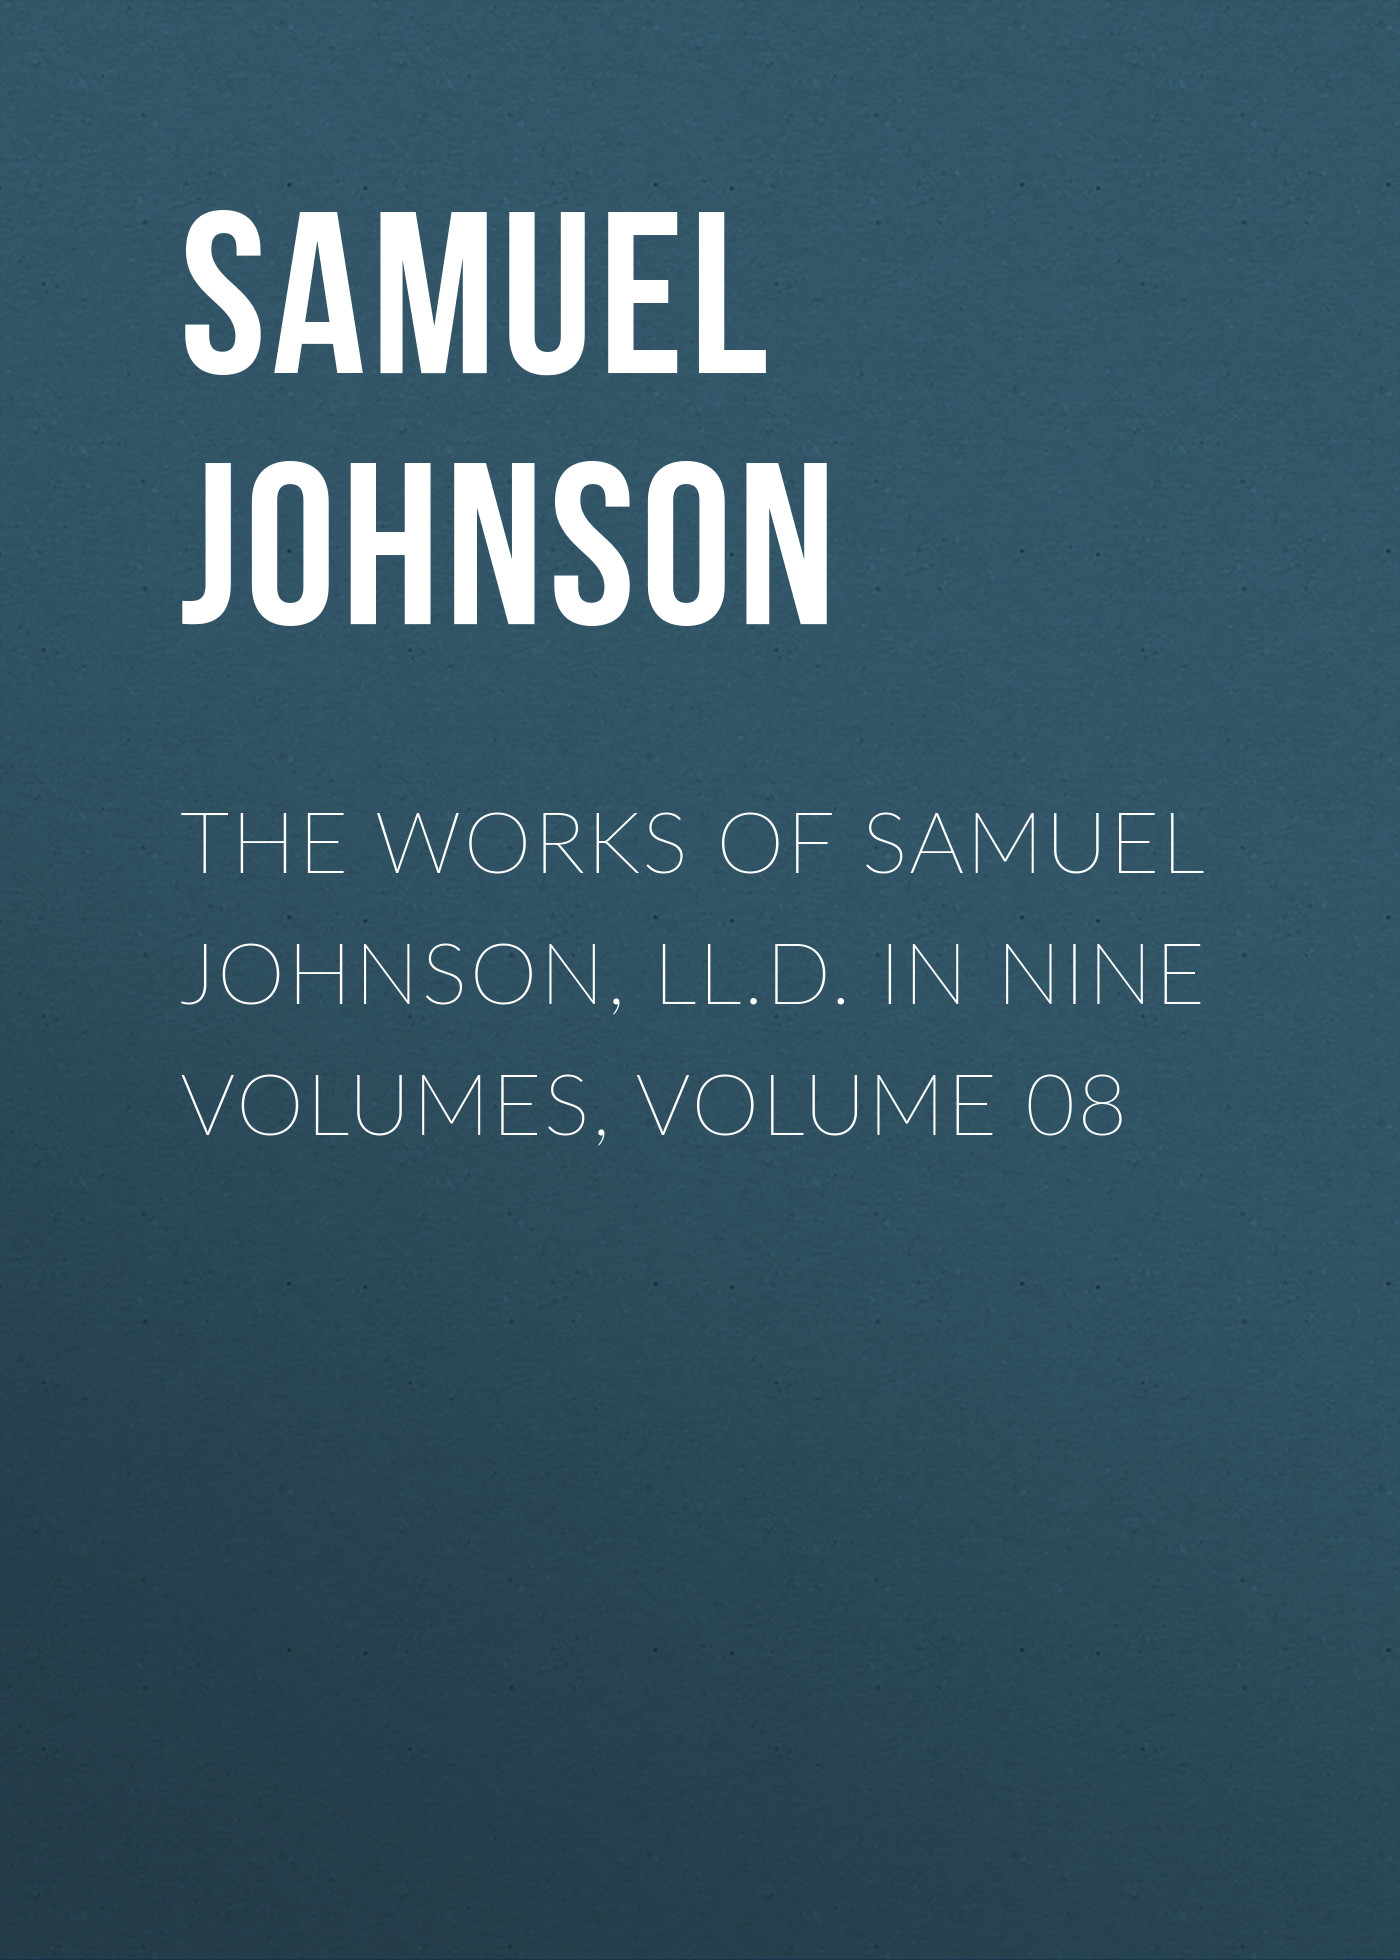 Samuel Johnson The Works of Samuel Johnson, LL.D. in Nine Volumes, Volume 08 цена и фото